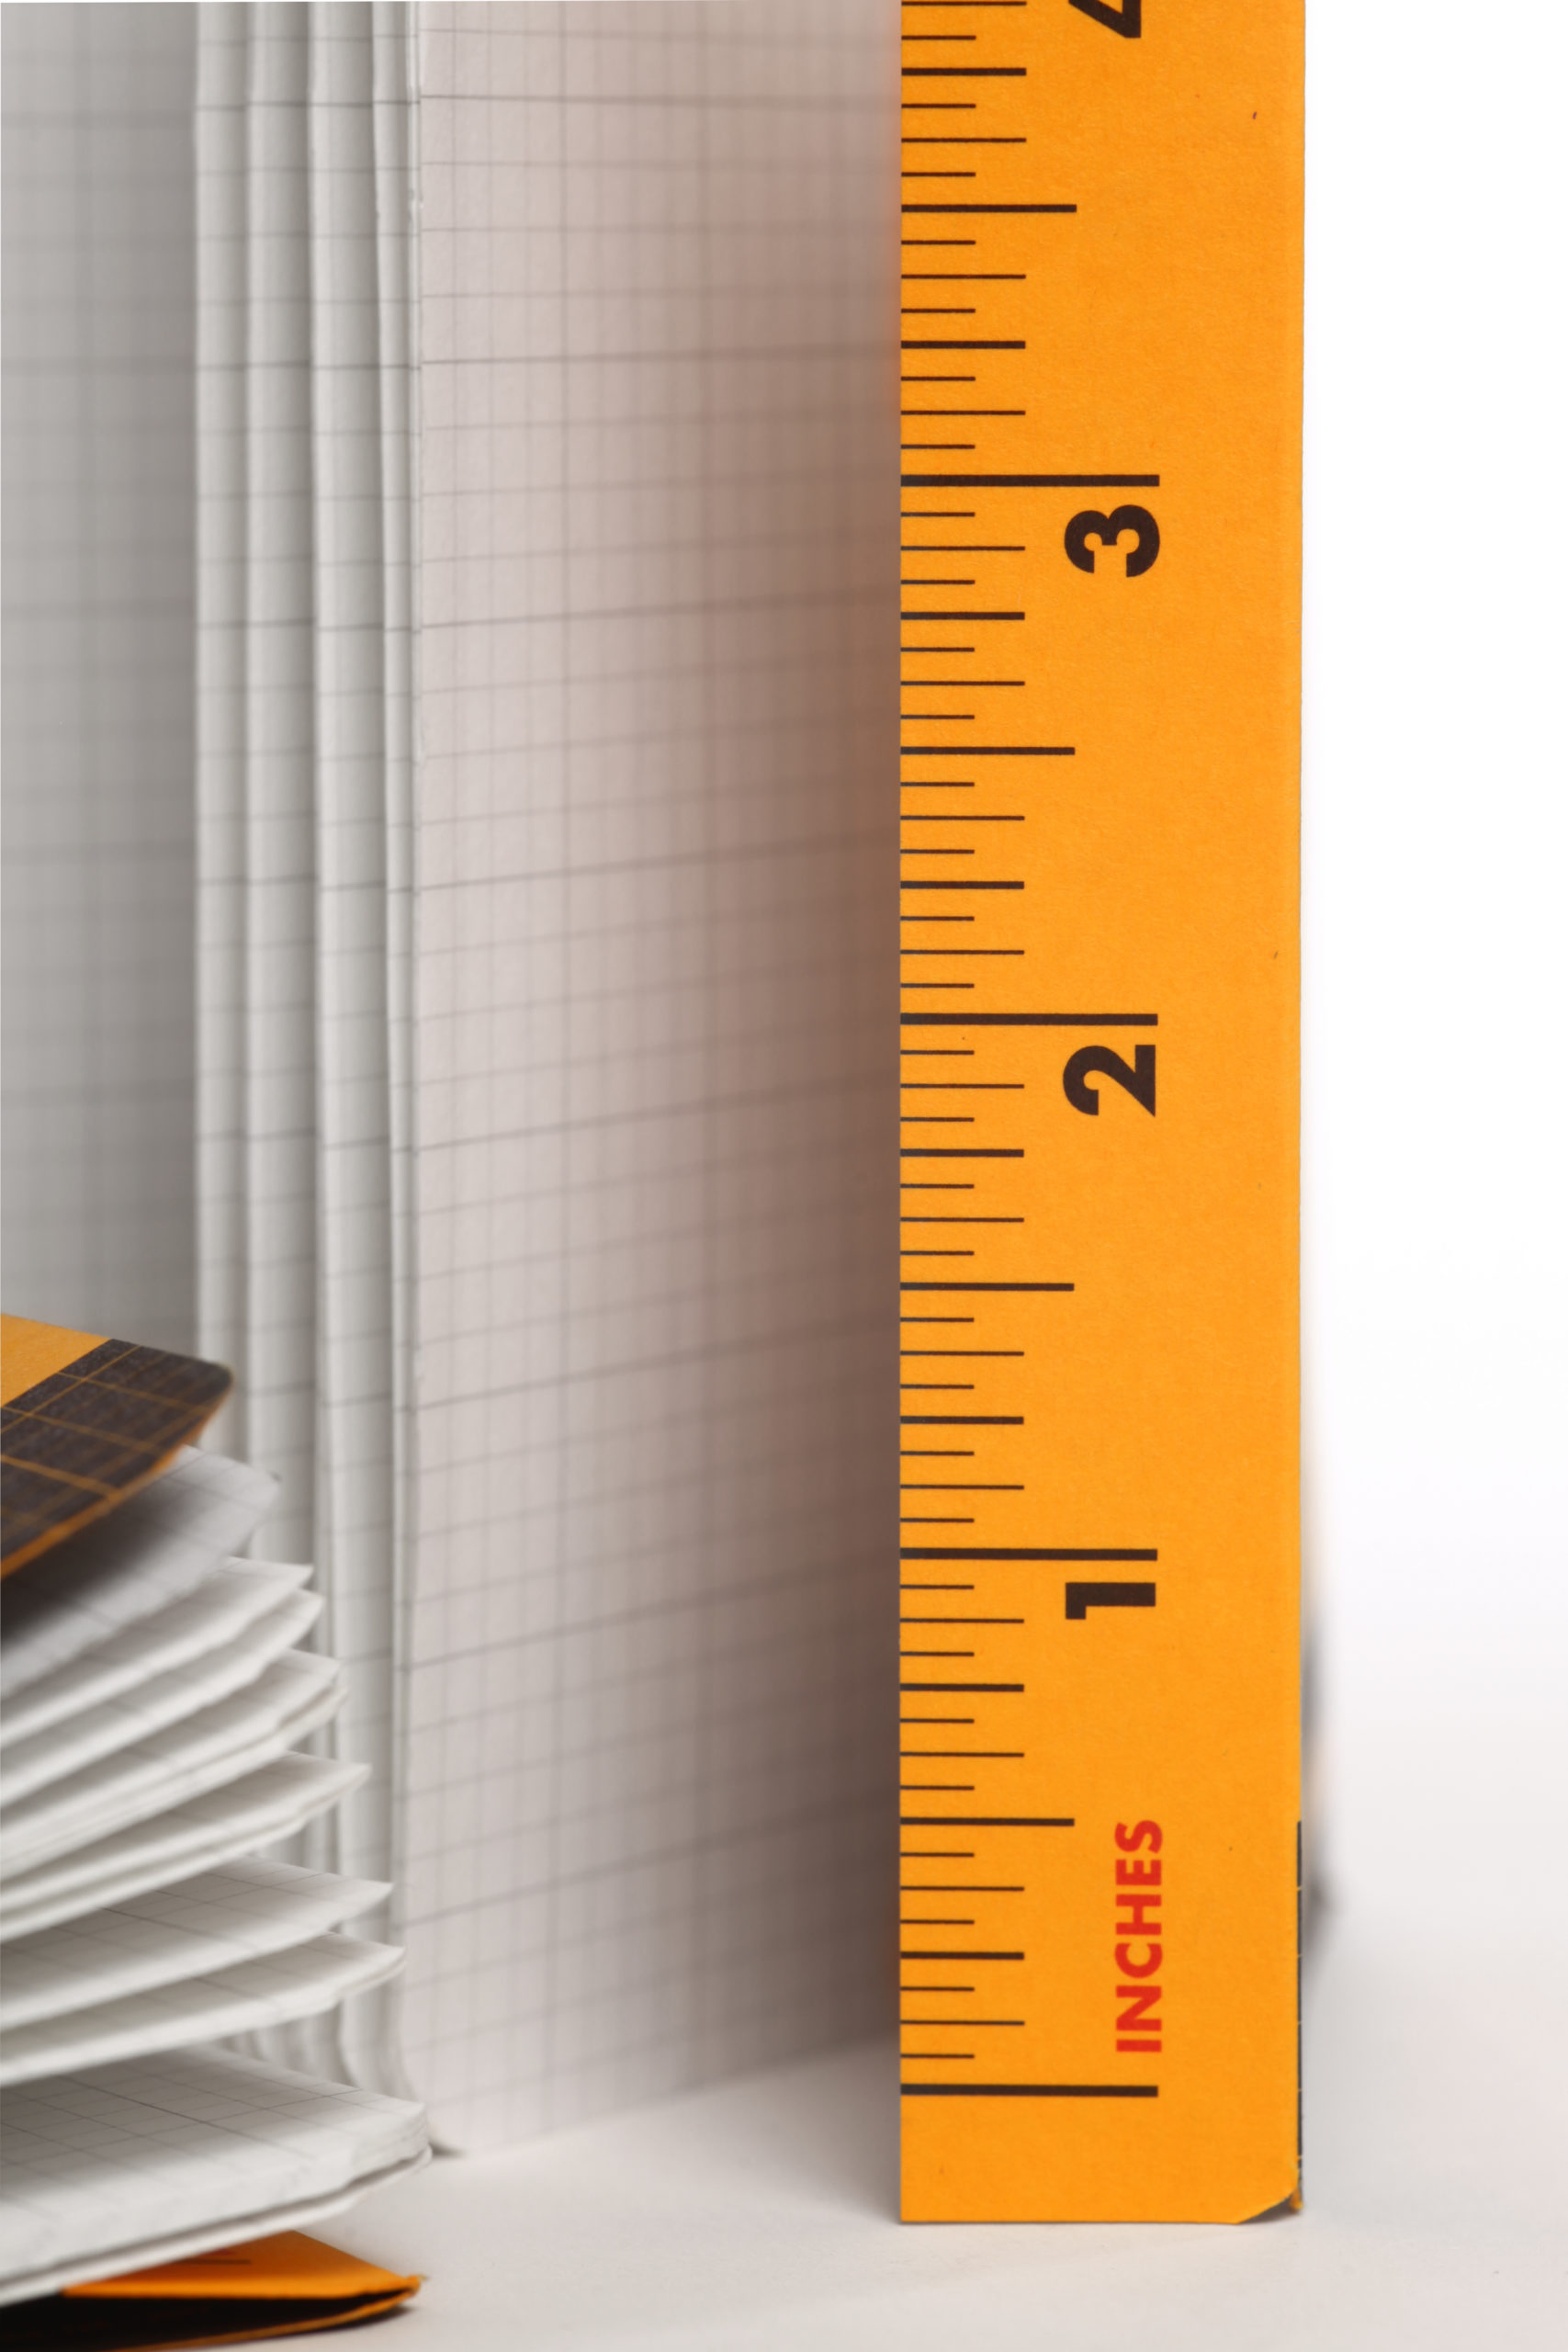 Field Notes Utility flip out ruler